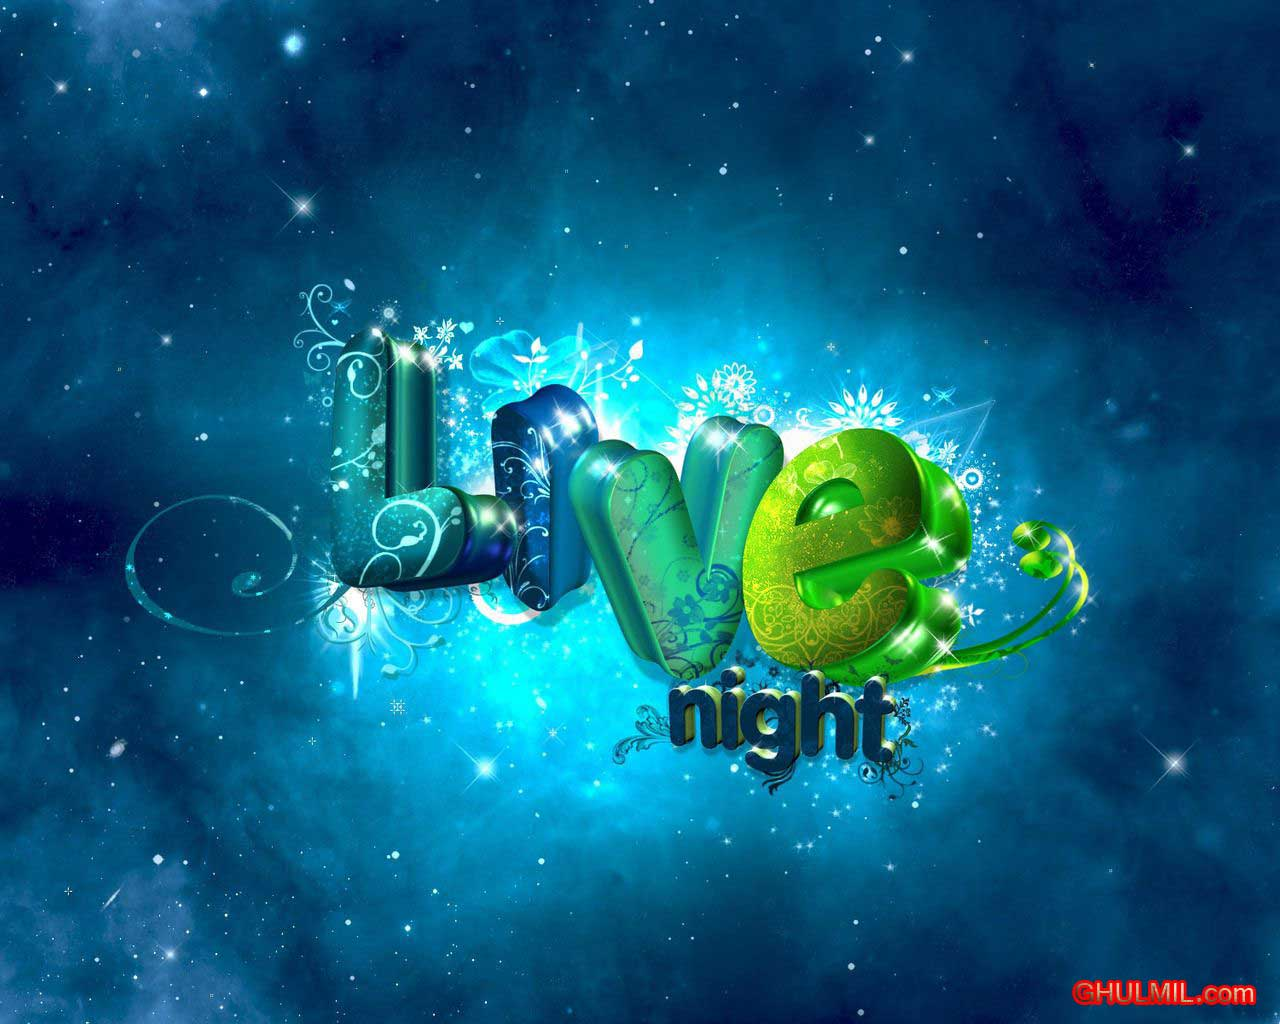 http://3.bp.blogspot.com/_3nJCVp7HBOw/TUDhUnmGJWI/AAAAAAAAABQ/56swK9s2p74/s1600/love-night-latest-style-wallpaper.jpg